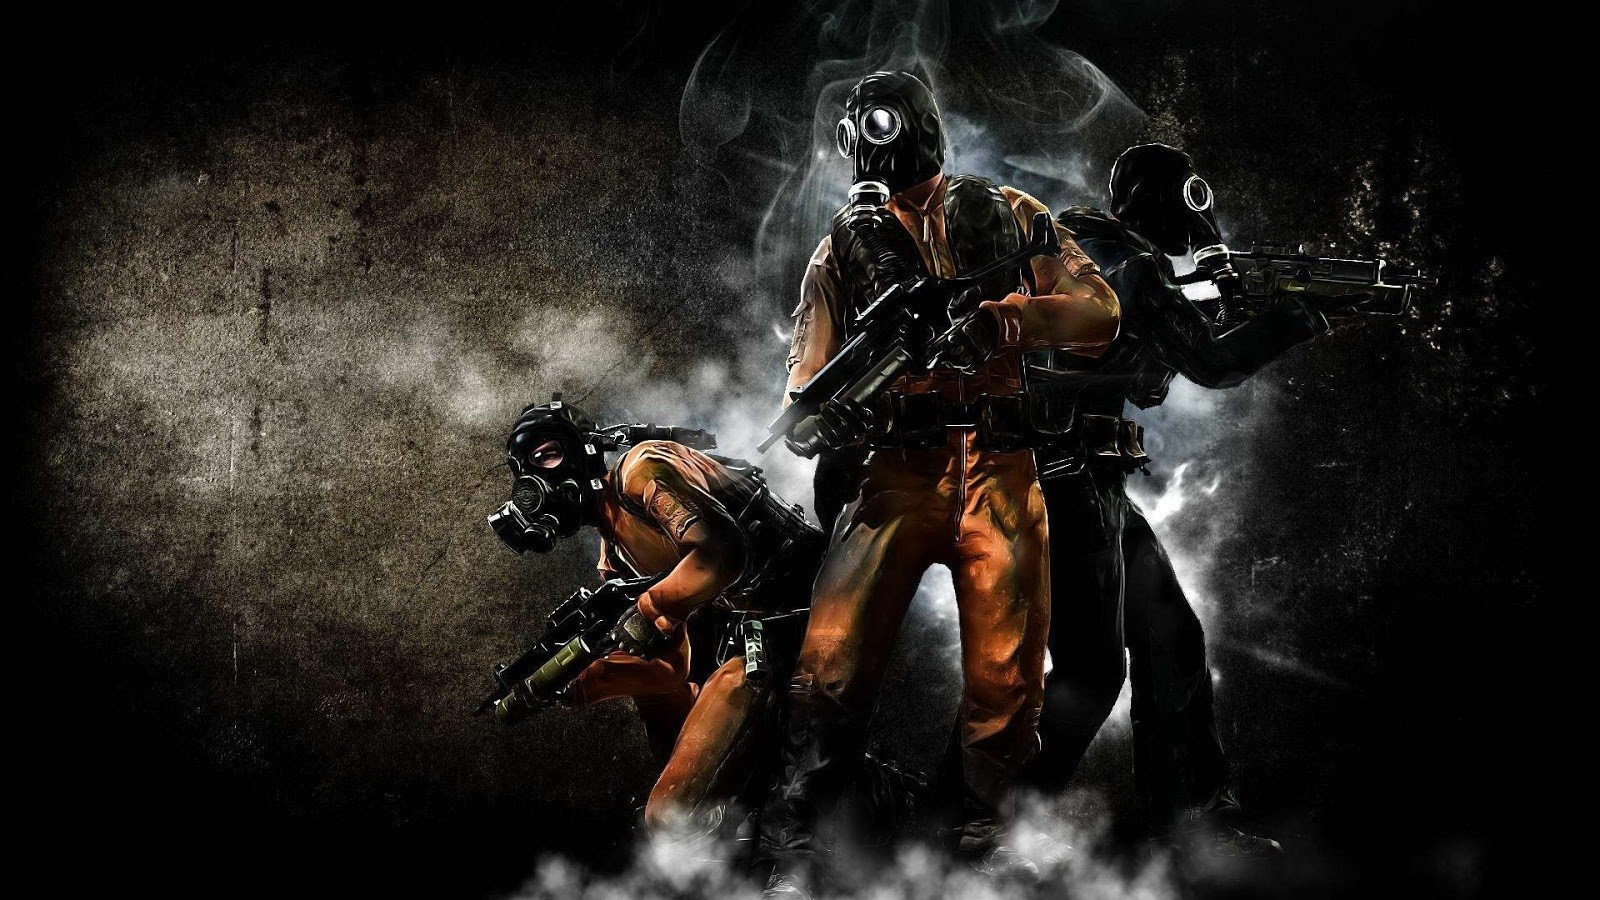 call of duty: black ops ii full hd wallpaper and background image